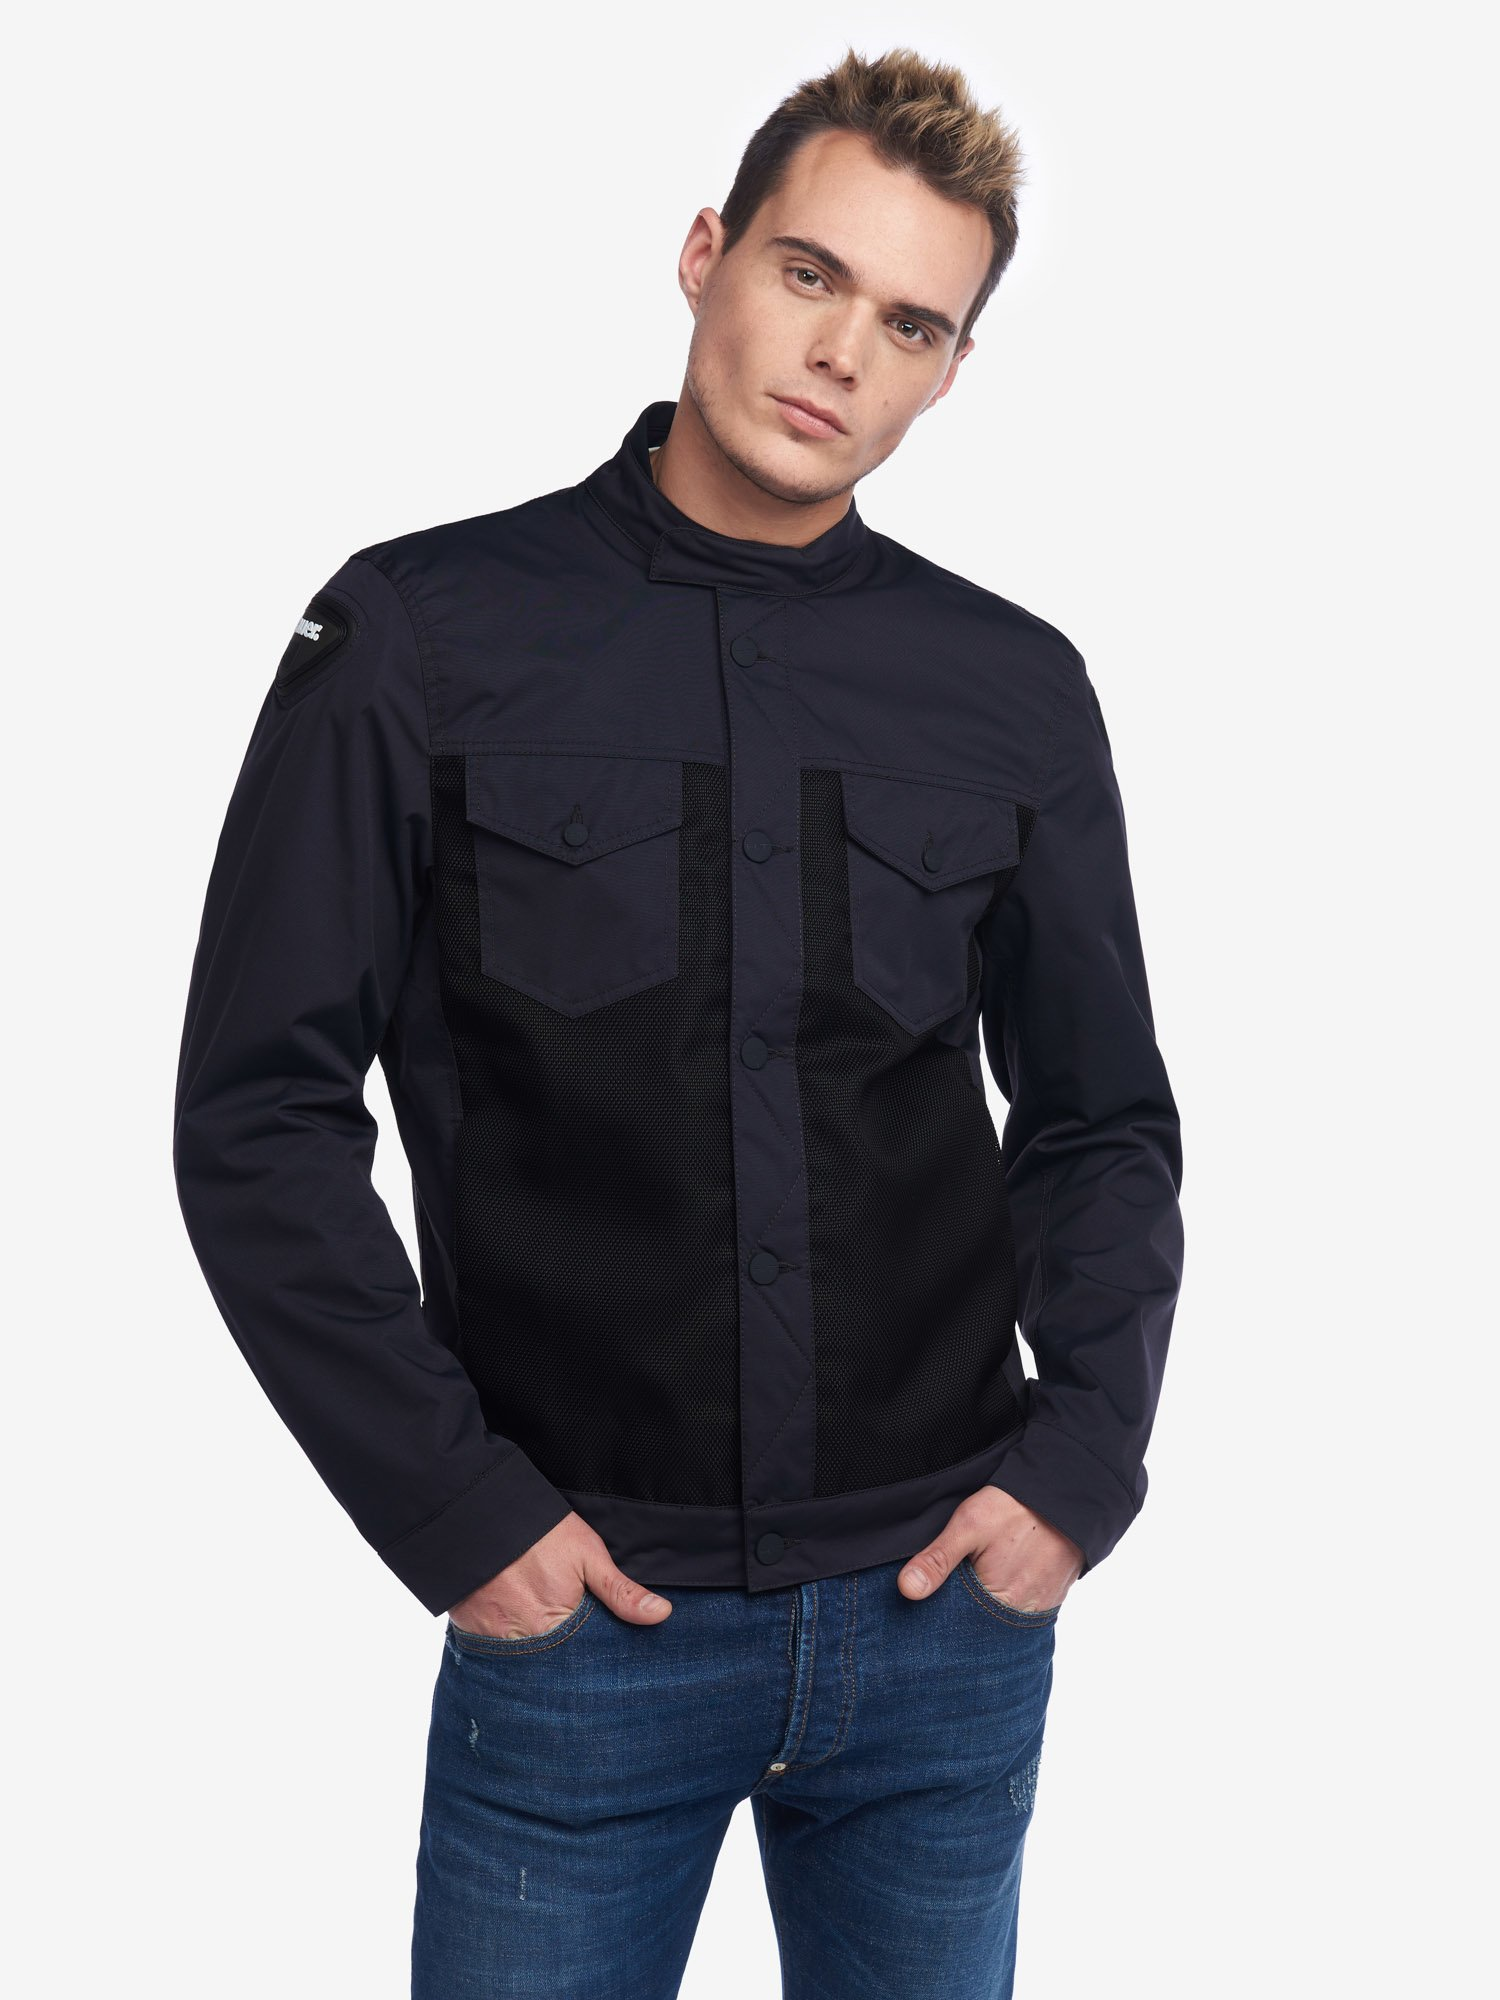 BILLY JACKET - Blauer